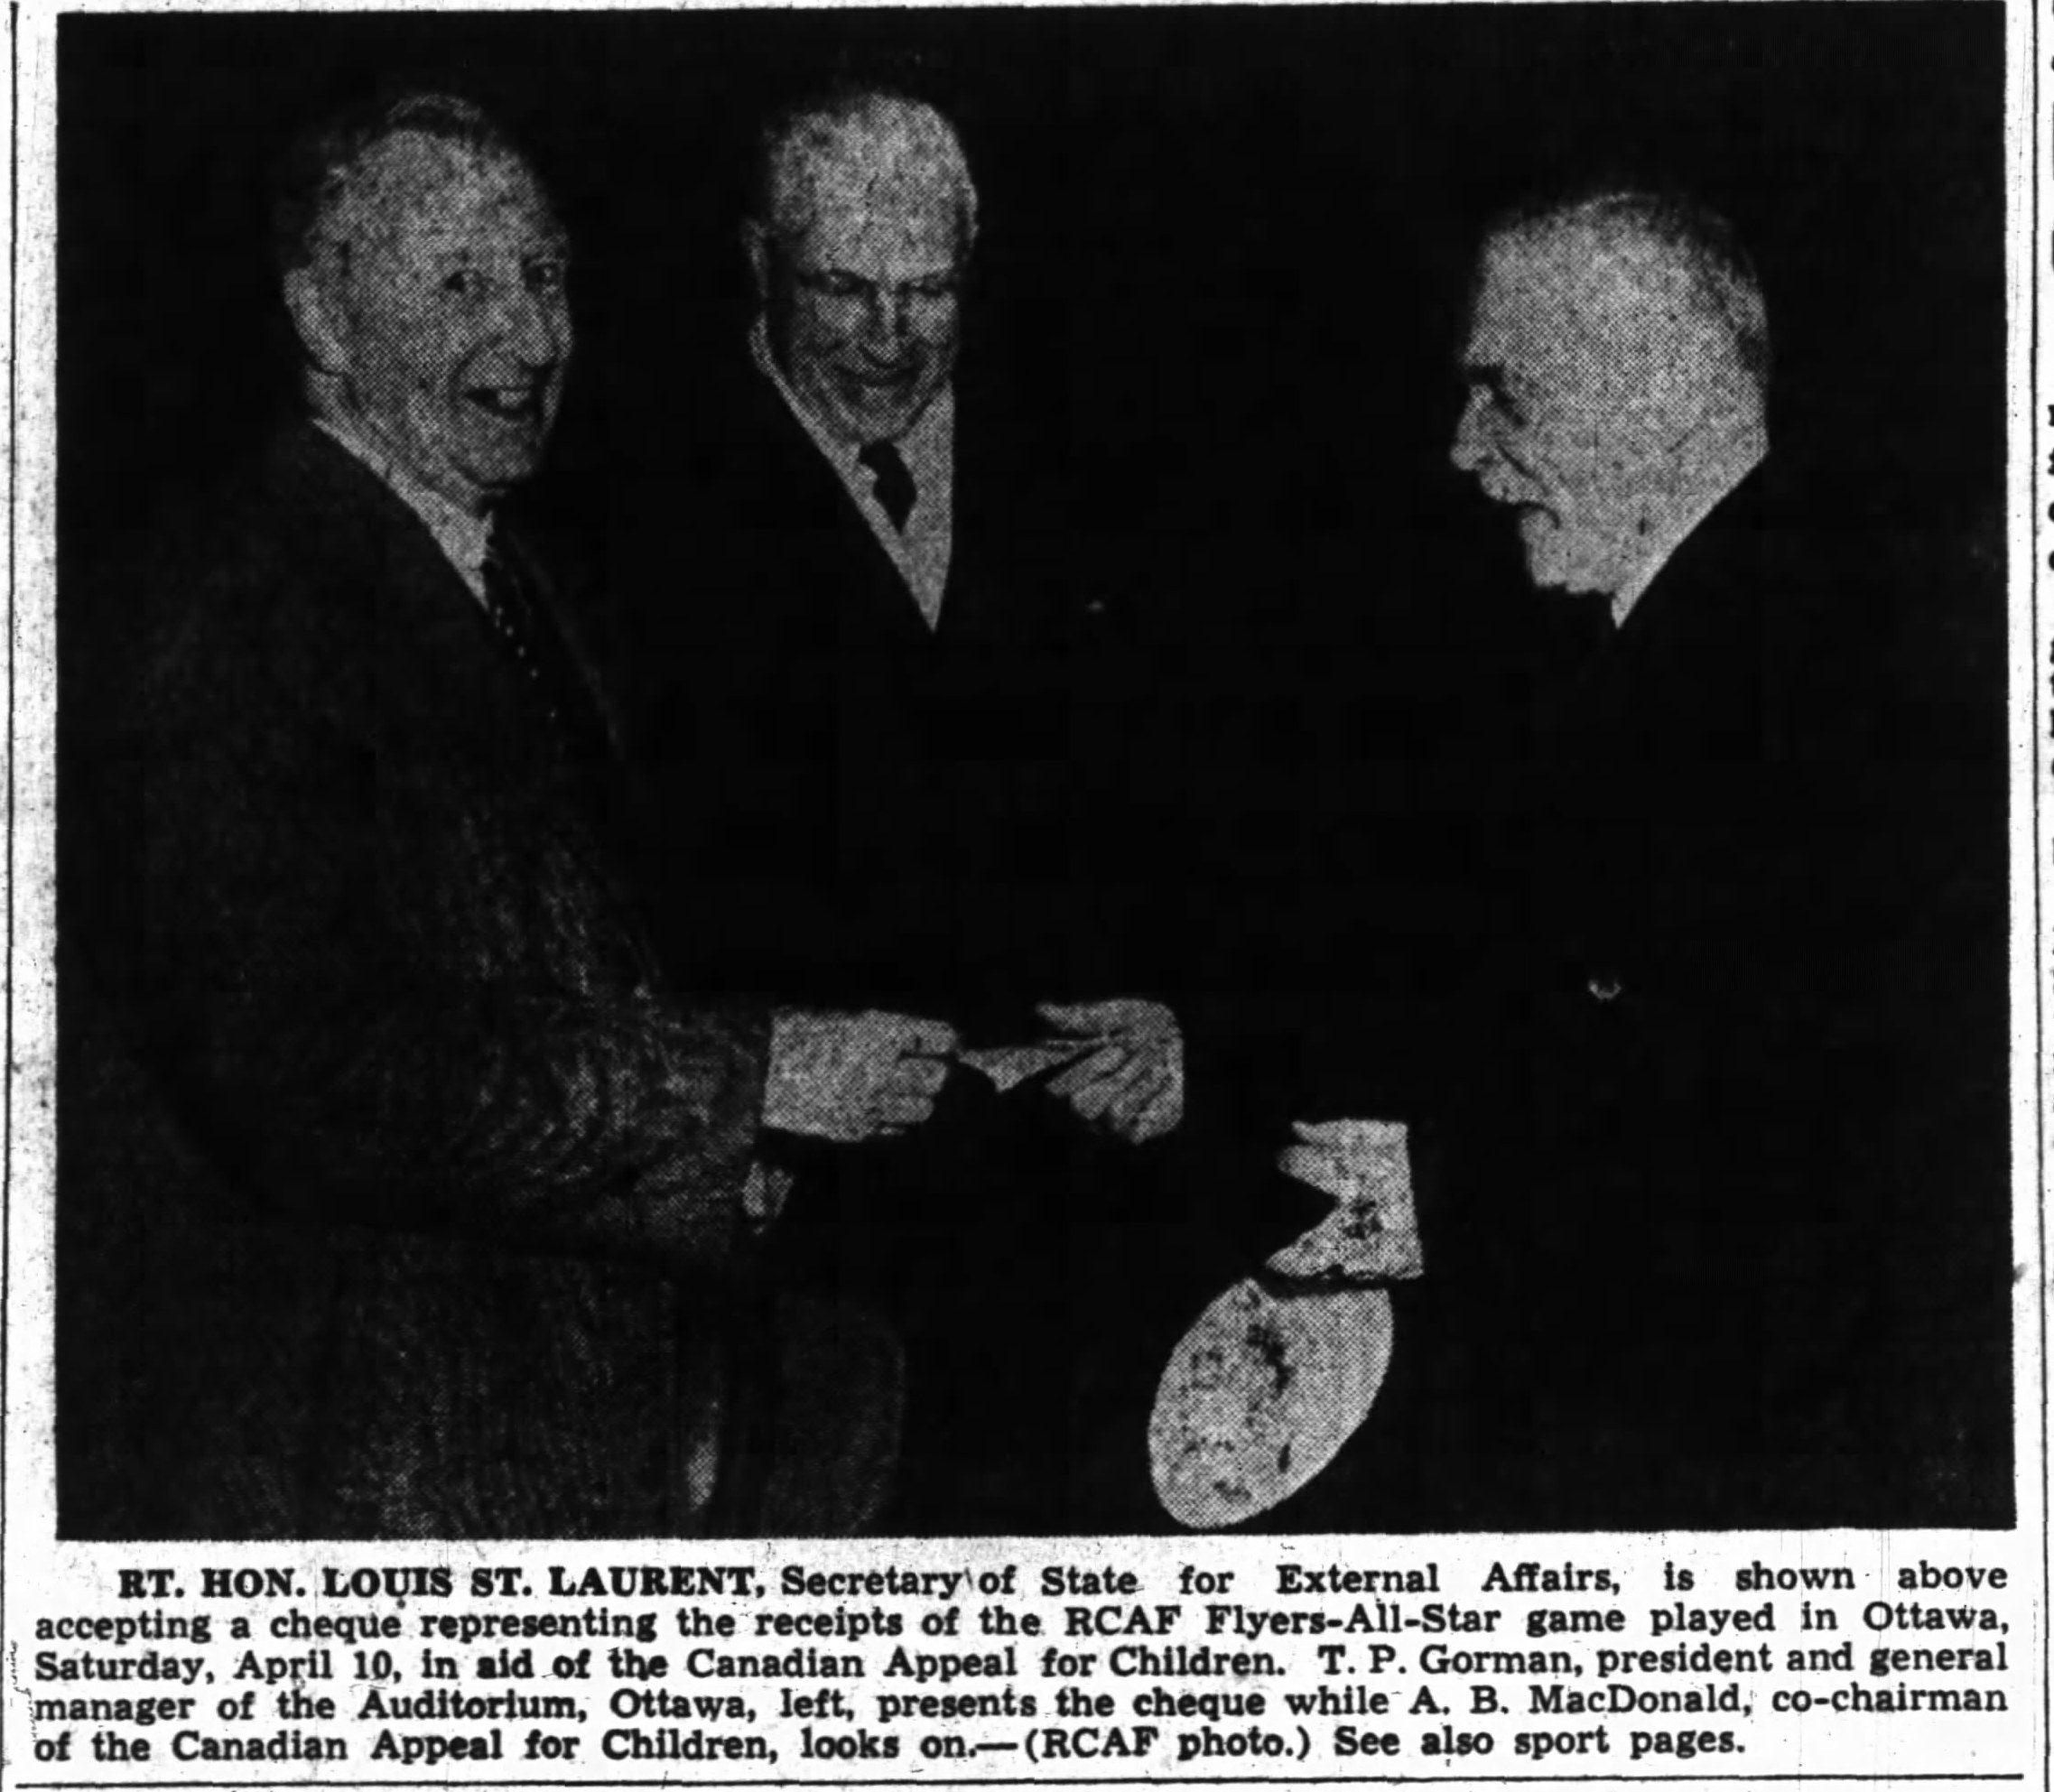 Photo: Right Honorable Louis St Laurant receives check from April 10  1948 Charity hockey  game RCAF Flyers vs NHL QSHL All Stars